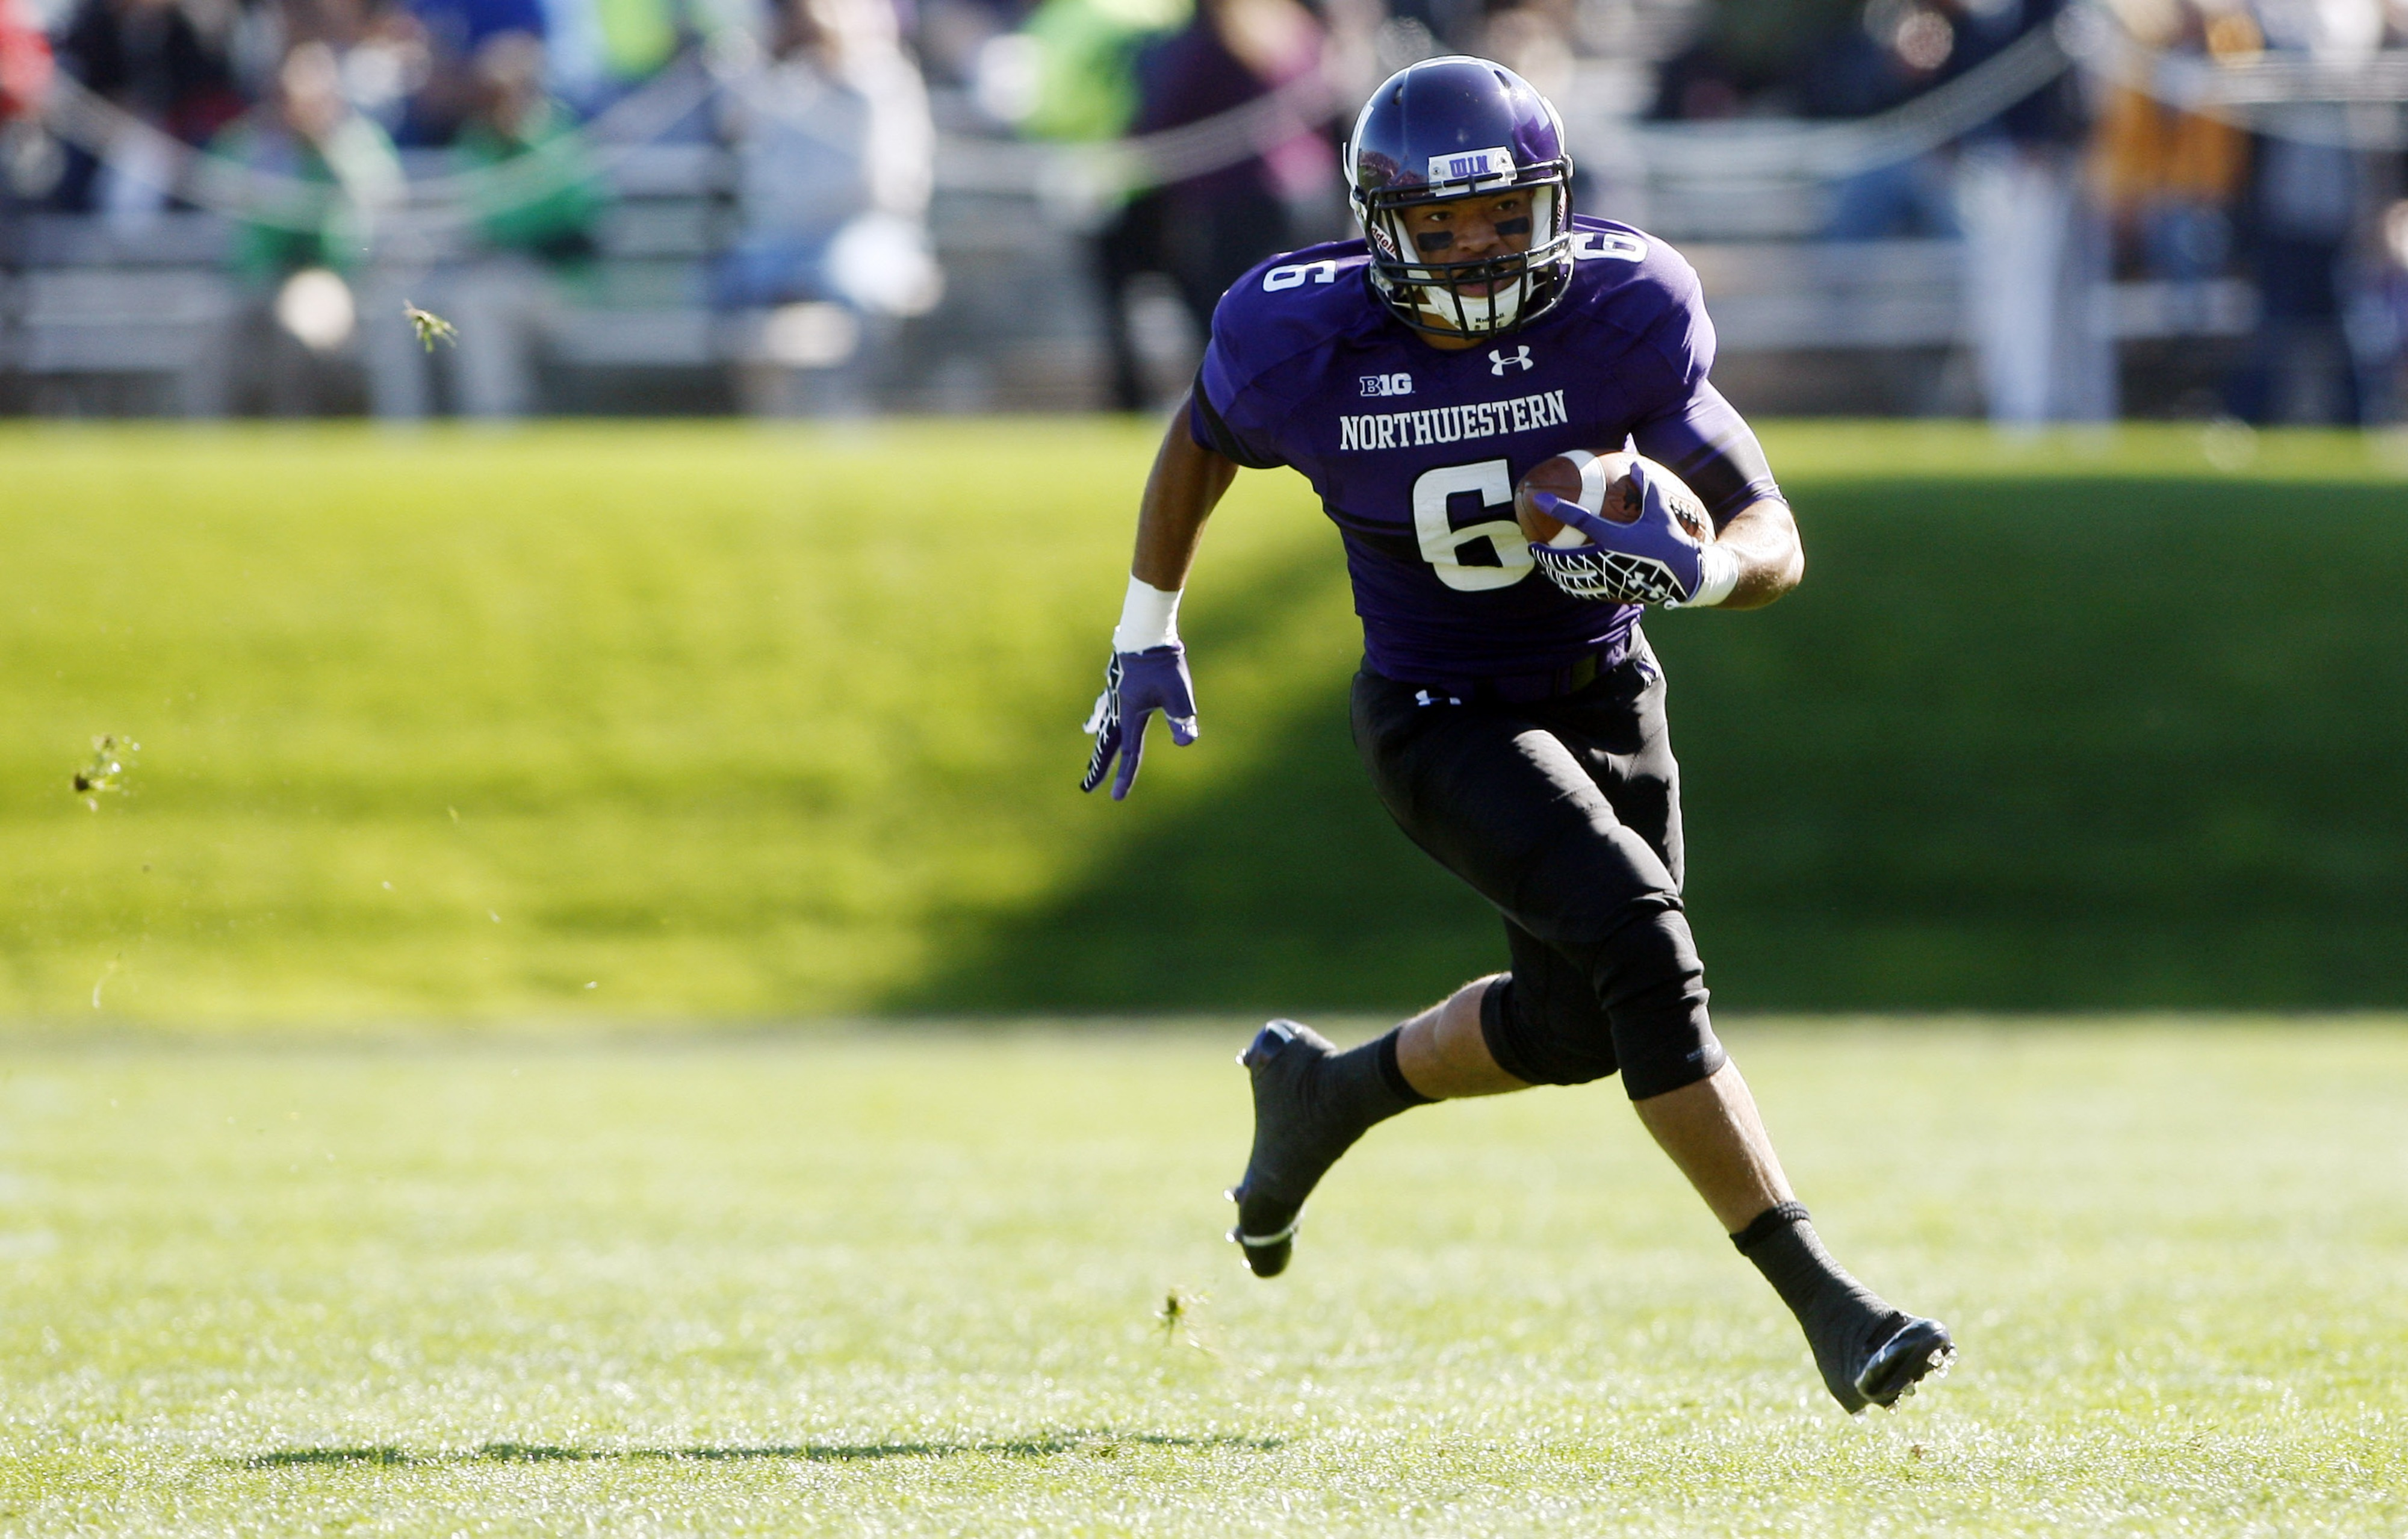 Sep 22, 2012; Evanston, IL, USA; Northwestern Wildcats wide receiver Tony Jones (6) runs after making a catch against the South Dakota Coyotes during the first quarter at Ryan Field.  Mandatory Credit: Jerry Lai-US PRESSWIRE